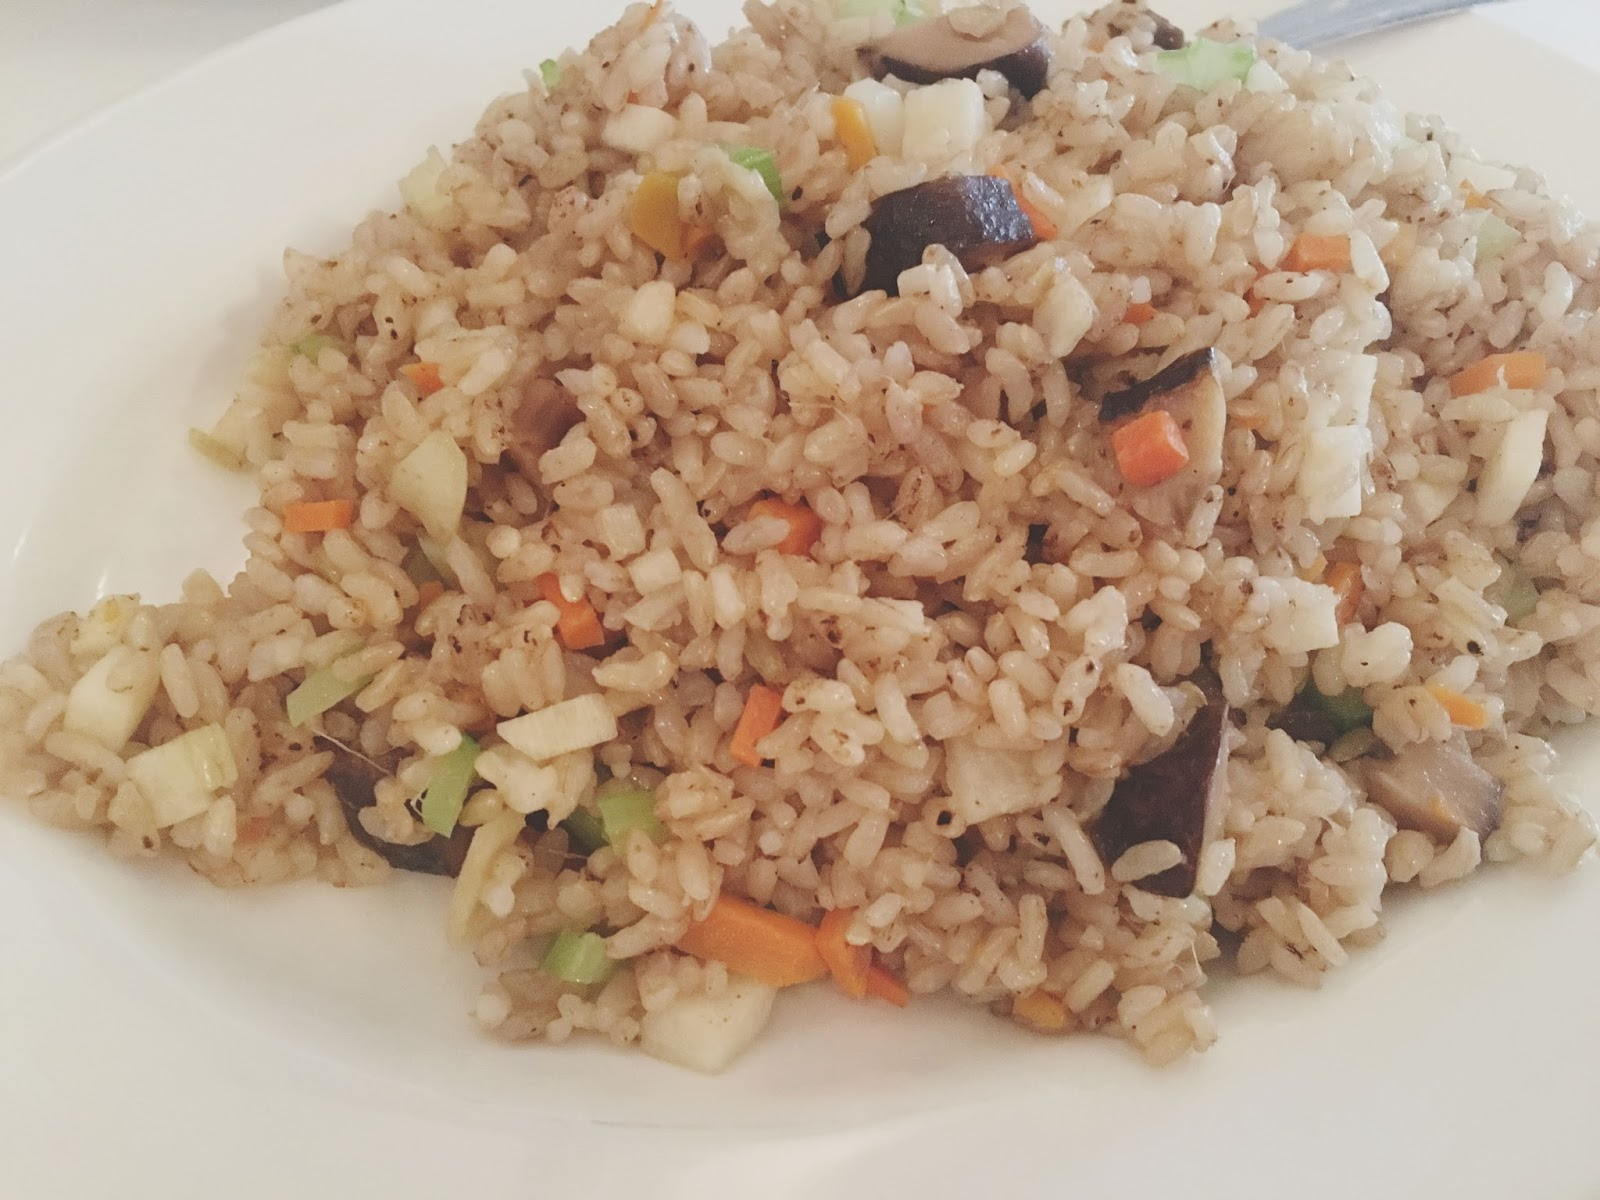 herbivore fried rice at Ginger & Fork - an upscale Chinese restaurant in Houston, Texas